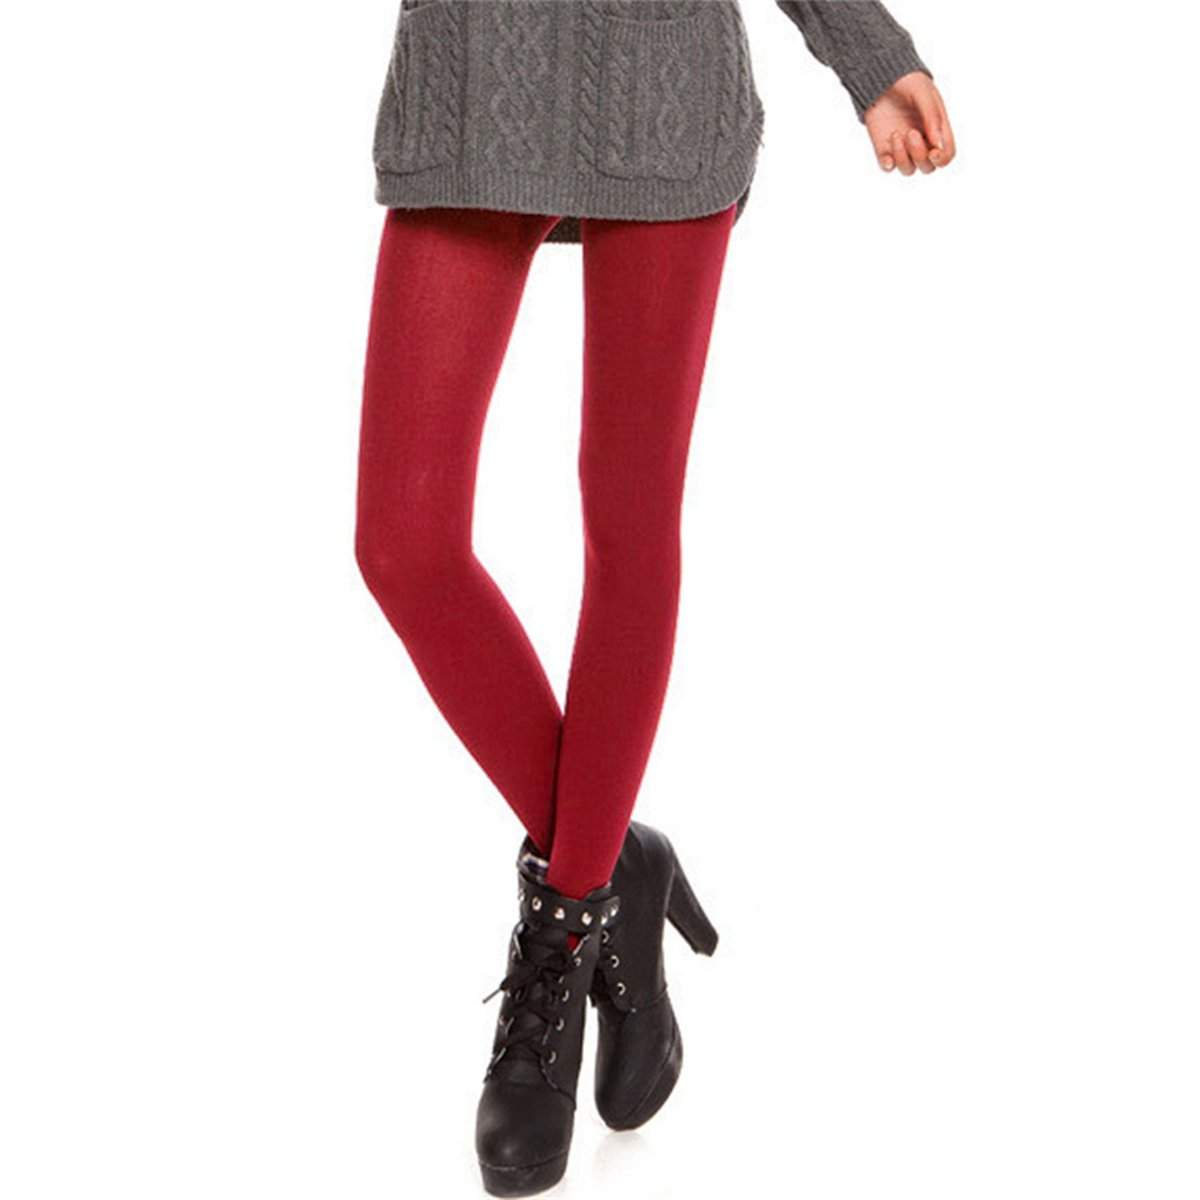 FUNOC Women's Super Opaque Control Pantyhose - Top Tights Velvet Stockings US*227860601